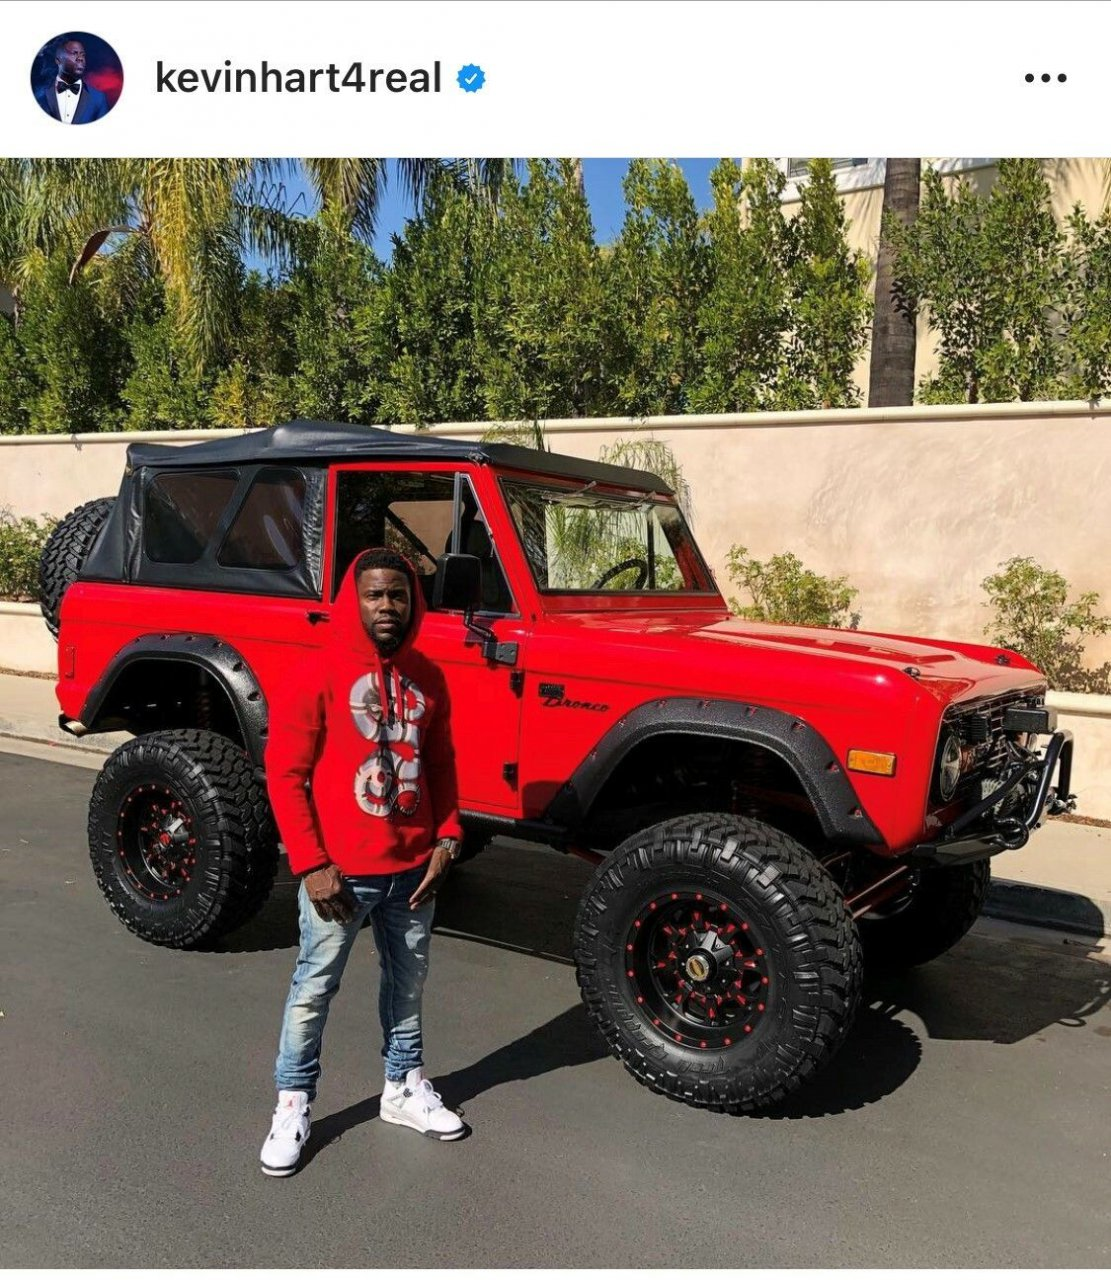 Kevin Hart to sell his custom 1977 Ford Bronco at Barrett-Jackson's Las Vegas auction